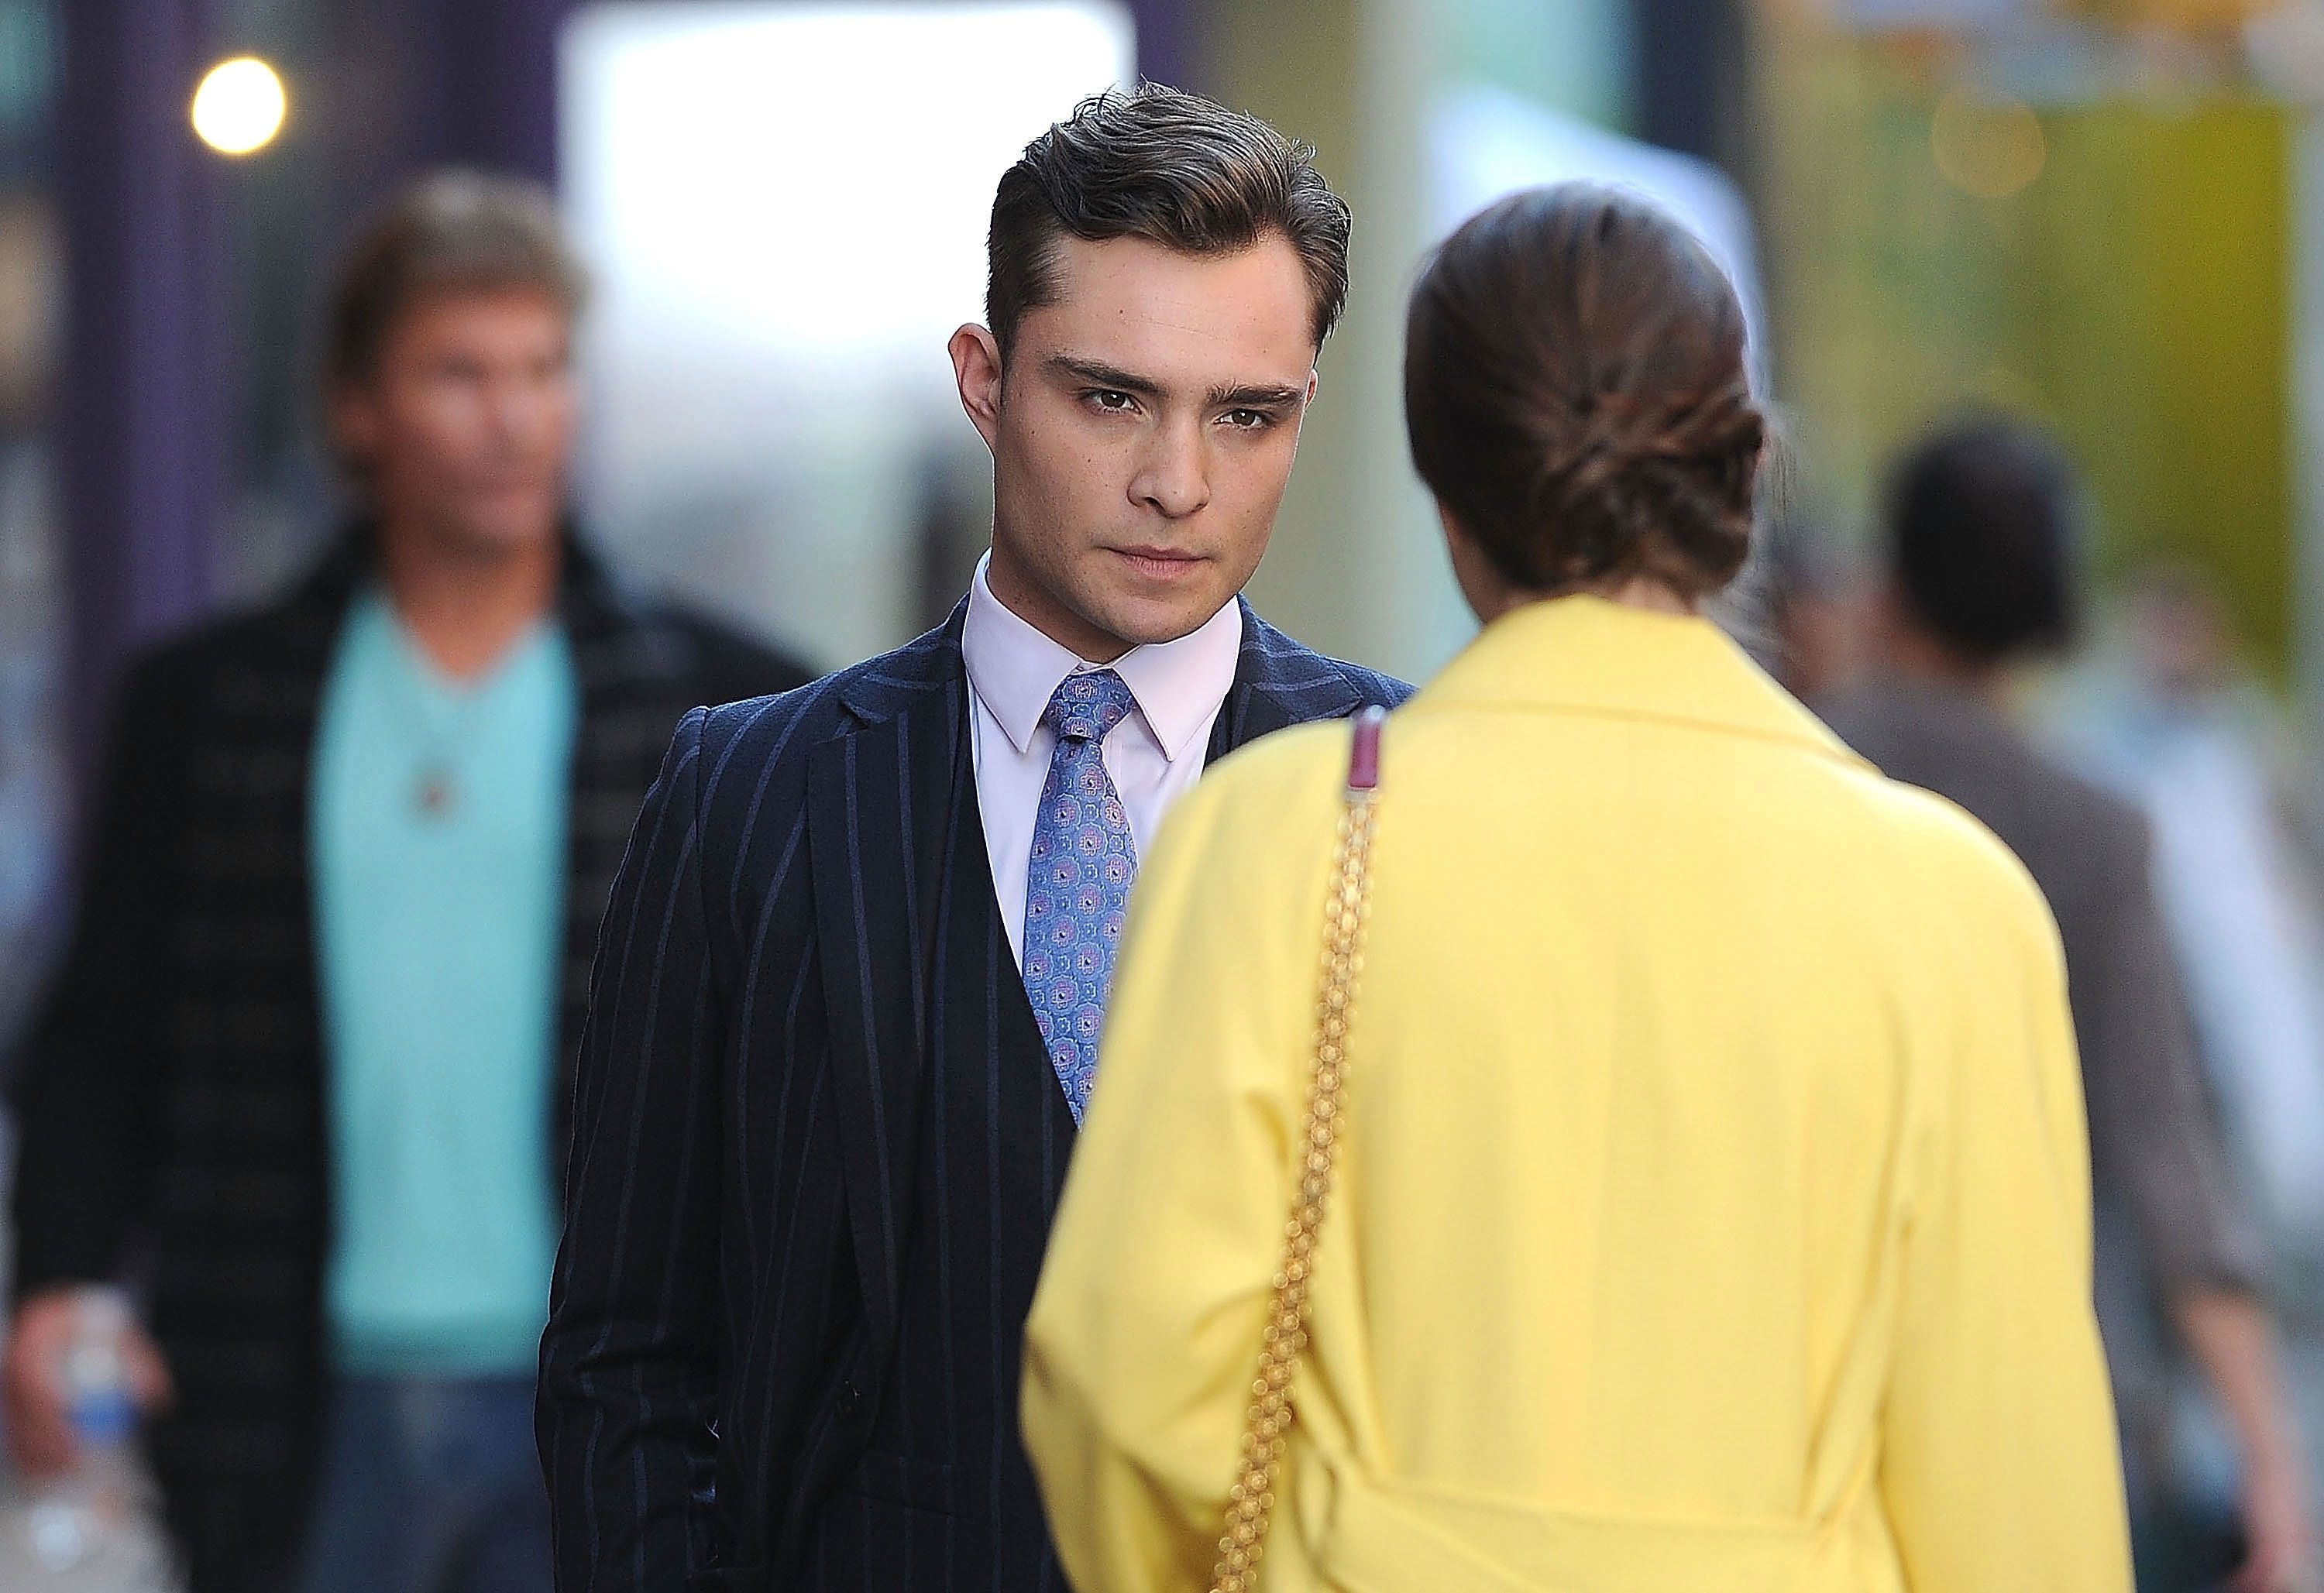 Gossip Girl Star Ed Westwick Denies Raping Actor Kristina Cohen